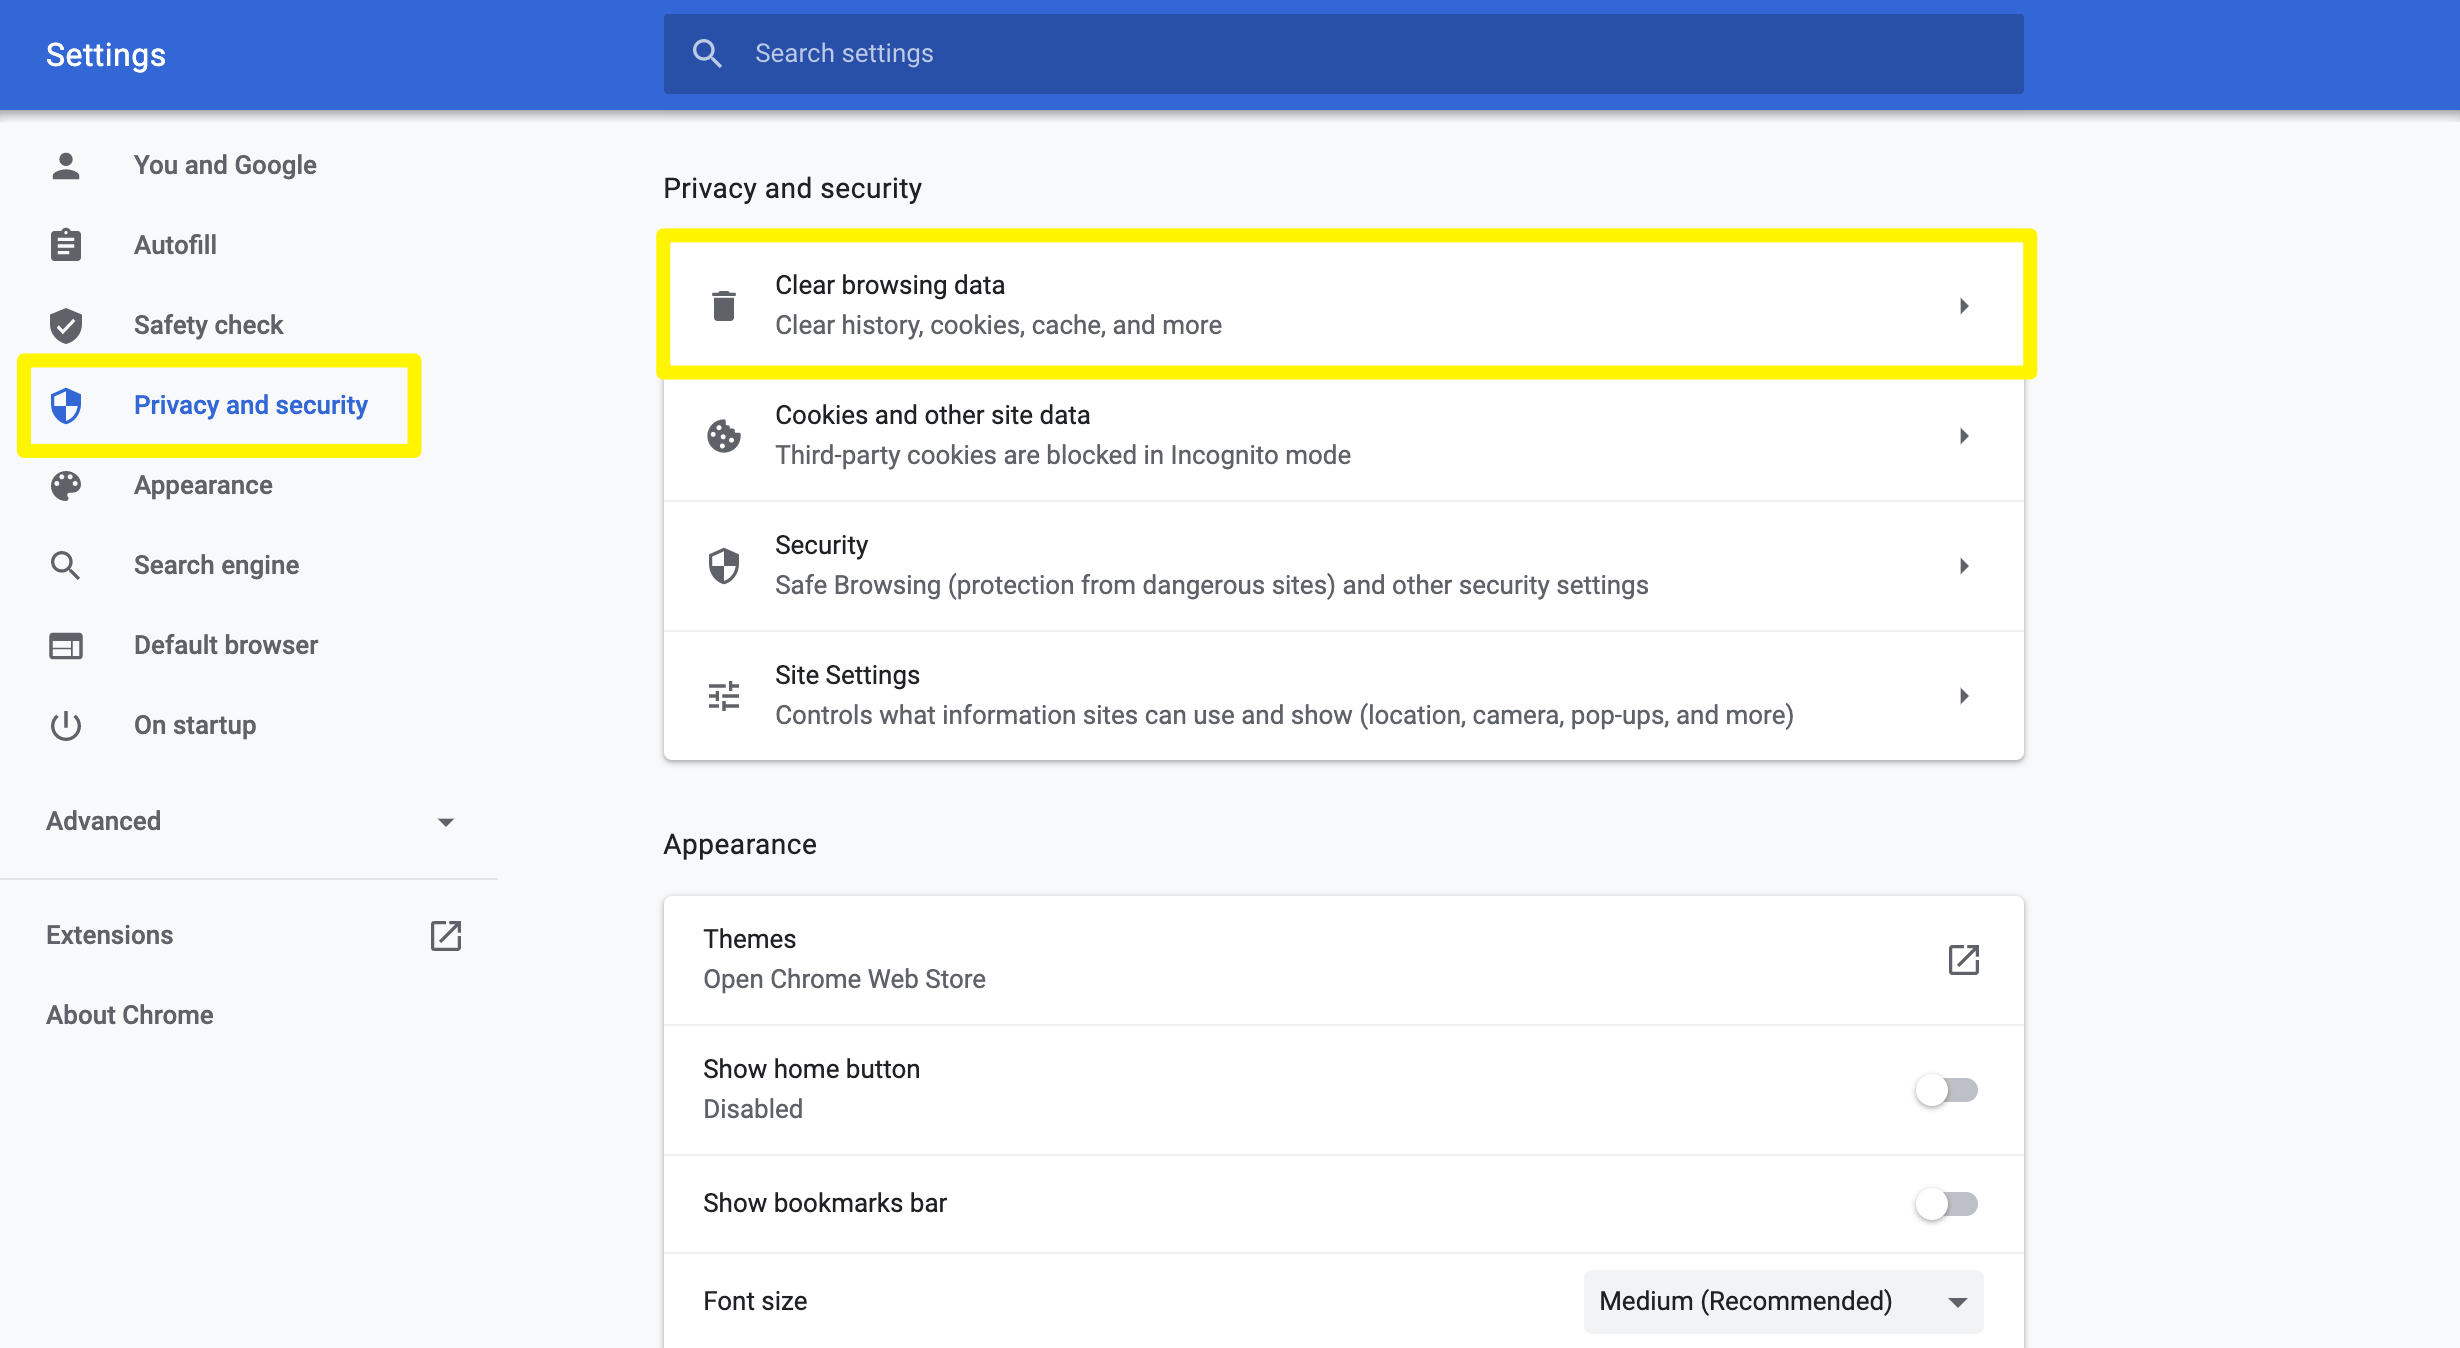 Chrome's privacy and security settings.